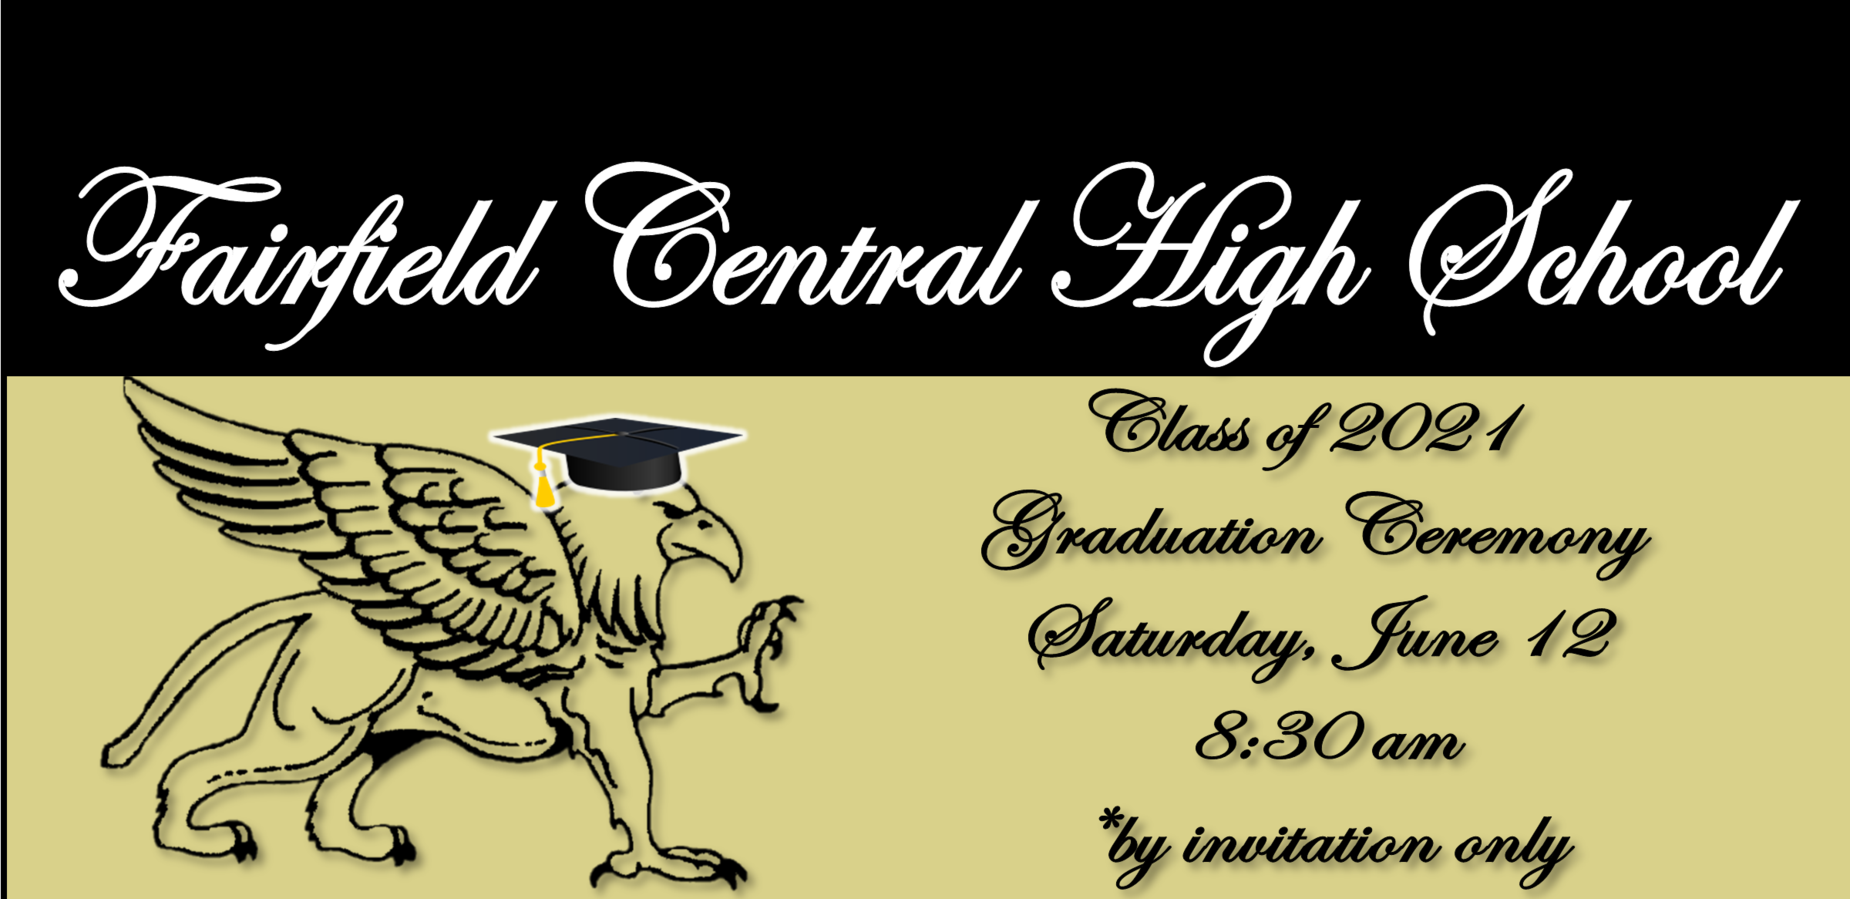 Class of 2021 Graduation Ceremony Saturday, June 12 @ 8:30 AM by invitation only